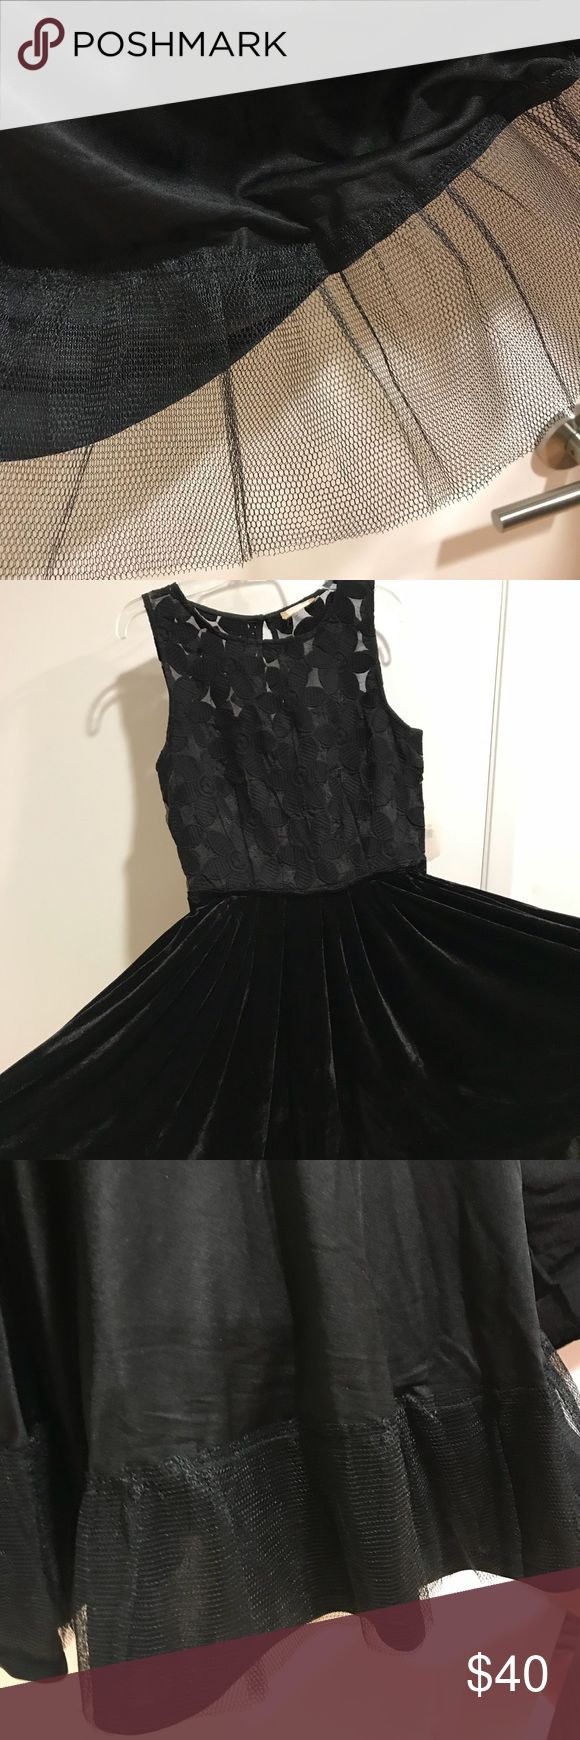 Black, fit flare lace and velvet, evening dress Add this lace, velvet black dress. Fit and flare party dresses for this holiday season!   Dress it up with sparkling earrings and bracelets for a perfectly party look! Sleeveless, Back zipper, 94%polyester, , 6% spandex lace, lining 100% polyester Hand wash cold water, line dry Imported altar'd state Dresses